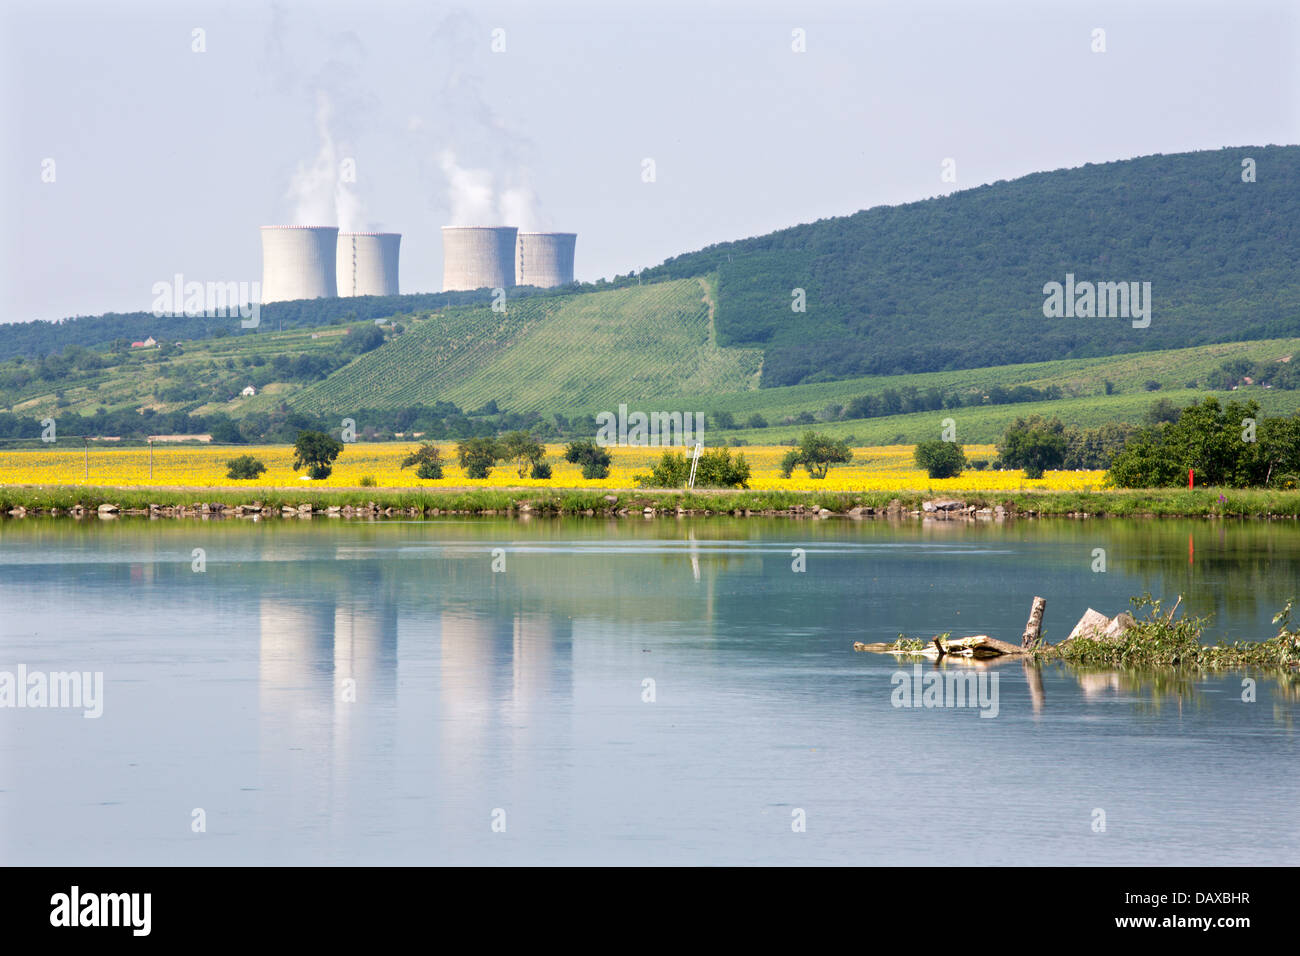 Hron river and nuclear power plant Mochovce - Slovakia - Stock Image